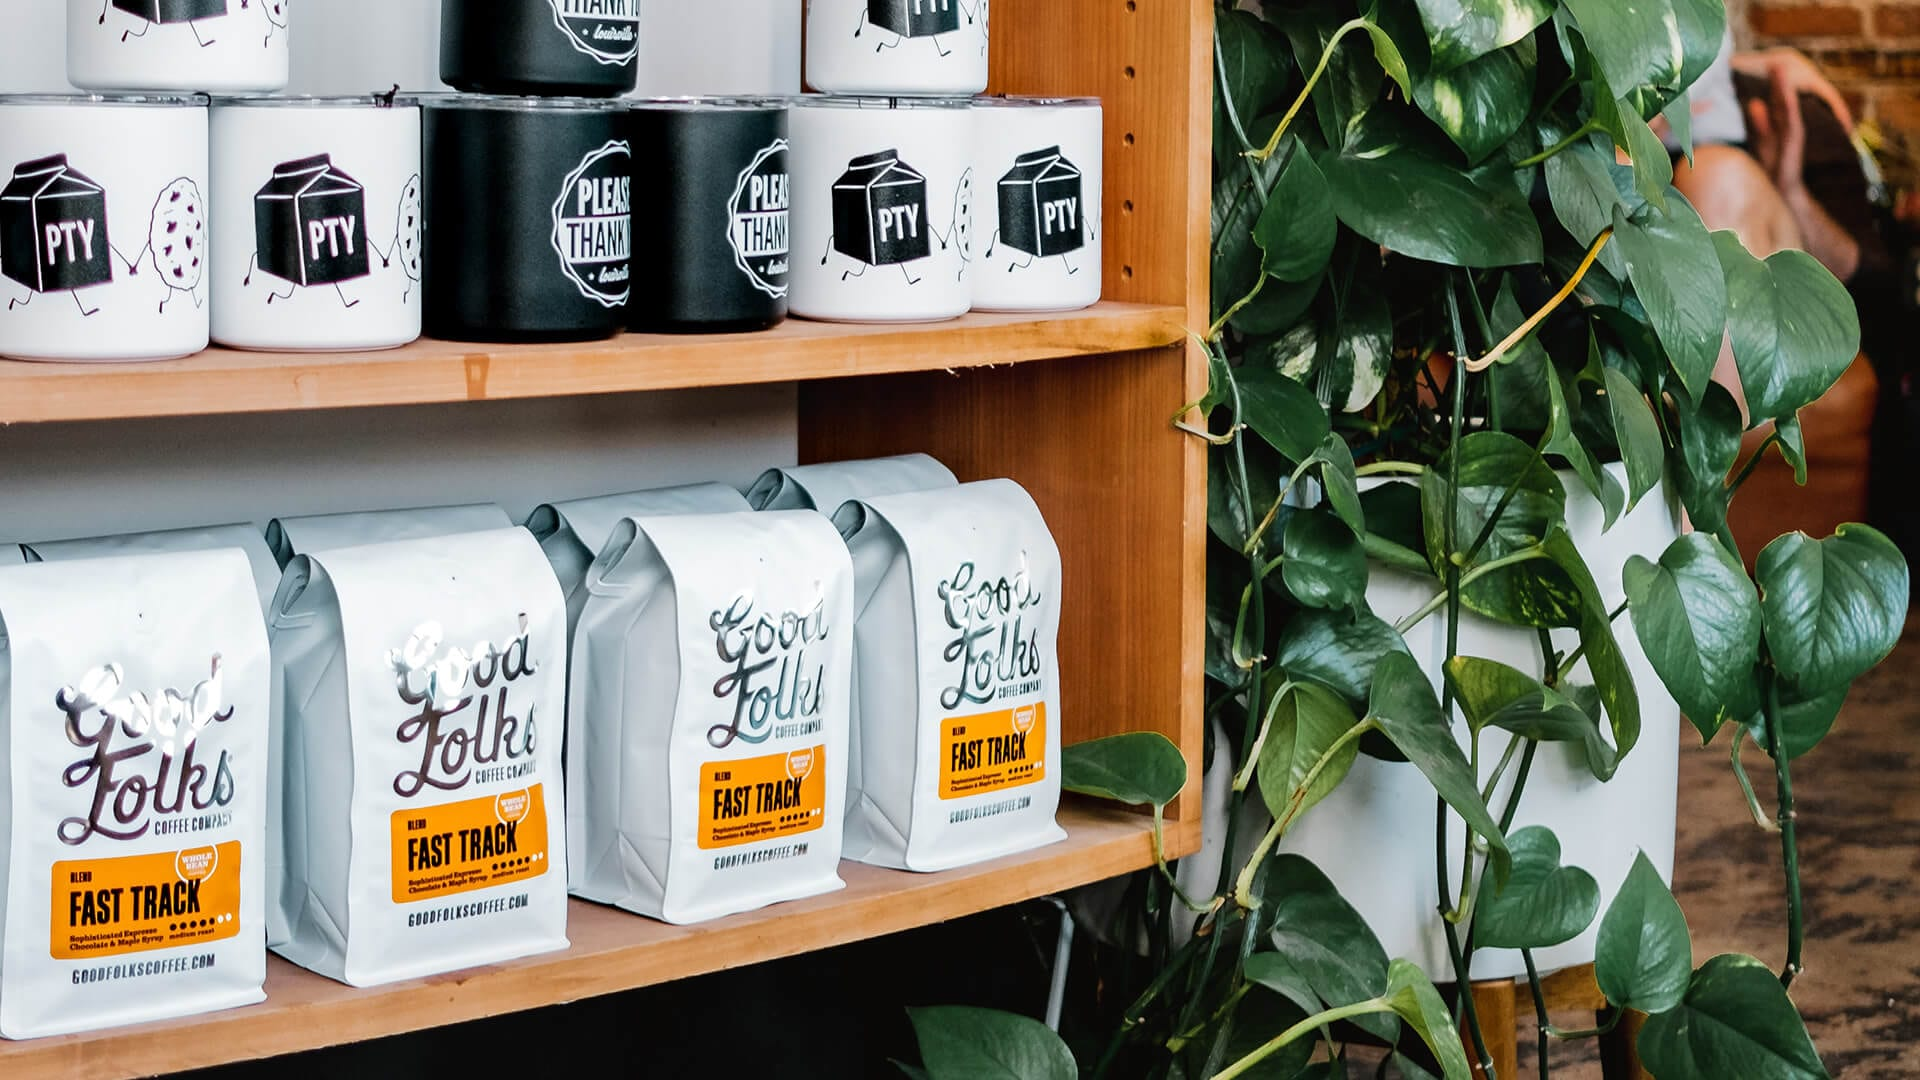 Ensure Your Product Packaging Stands Out array of competitor products in store